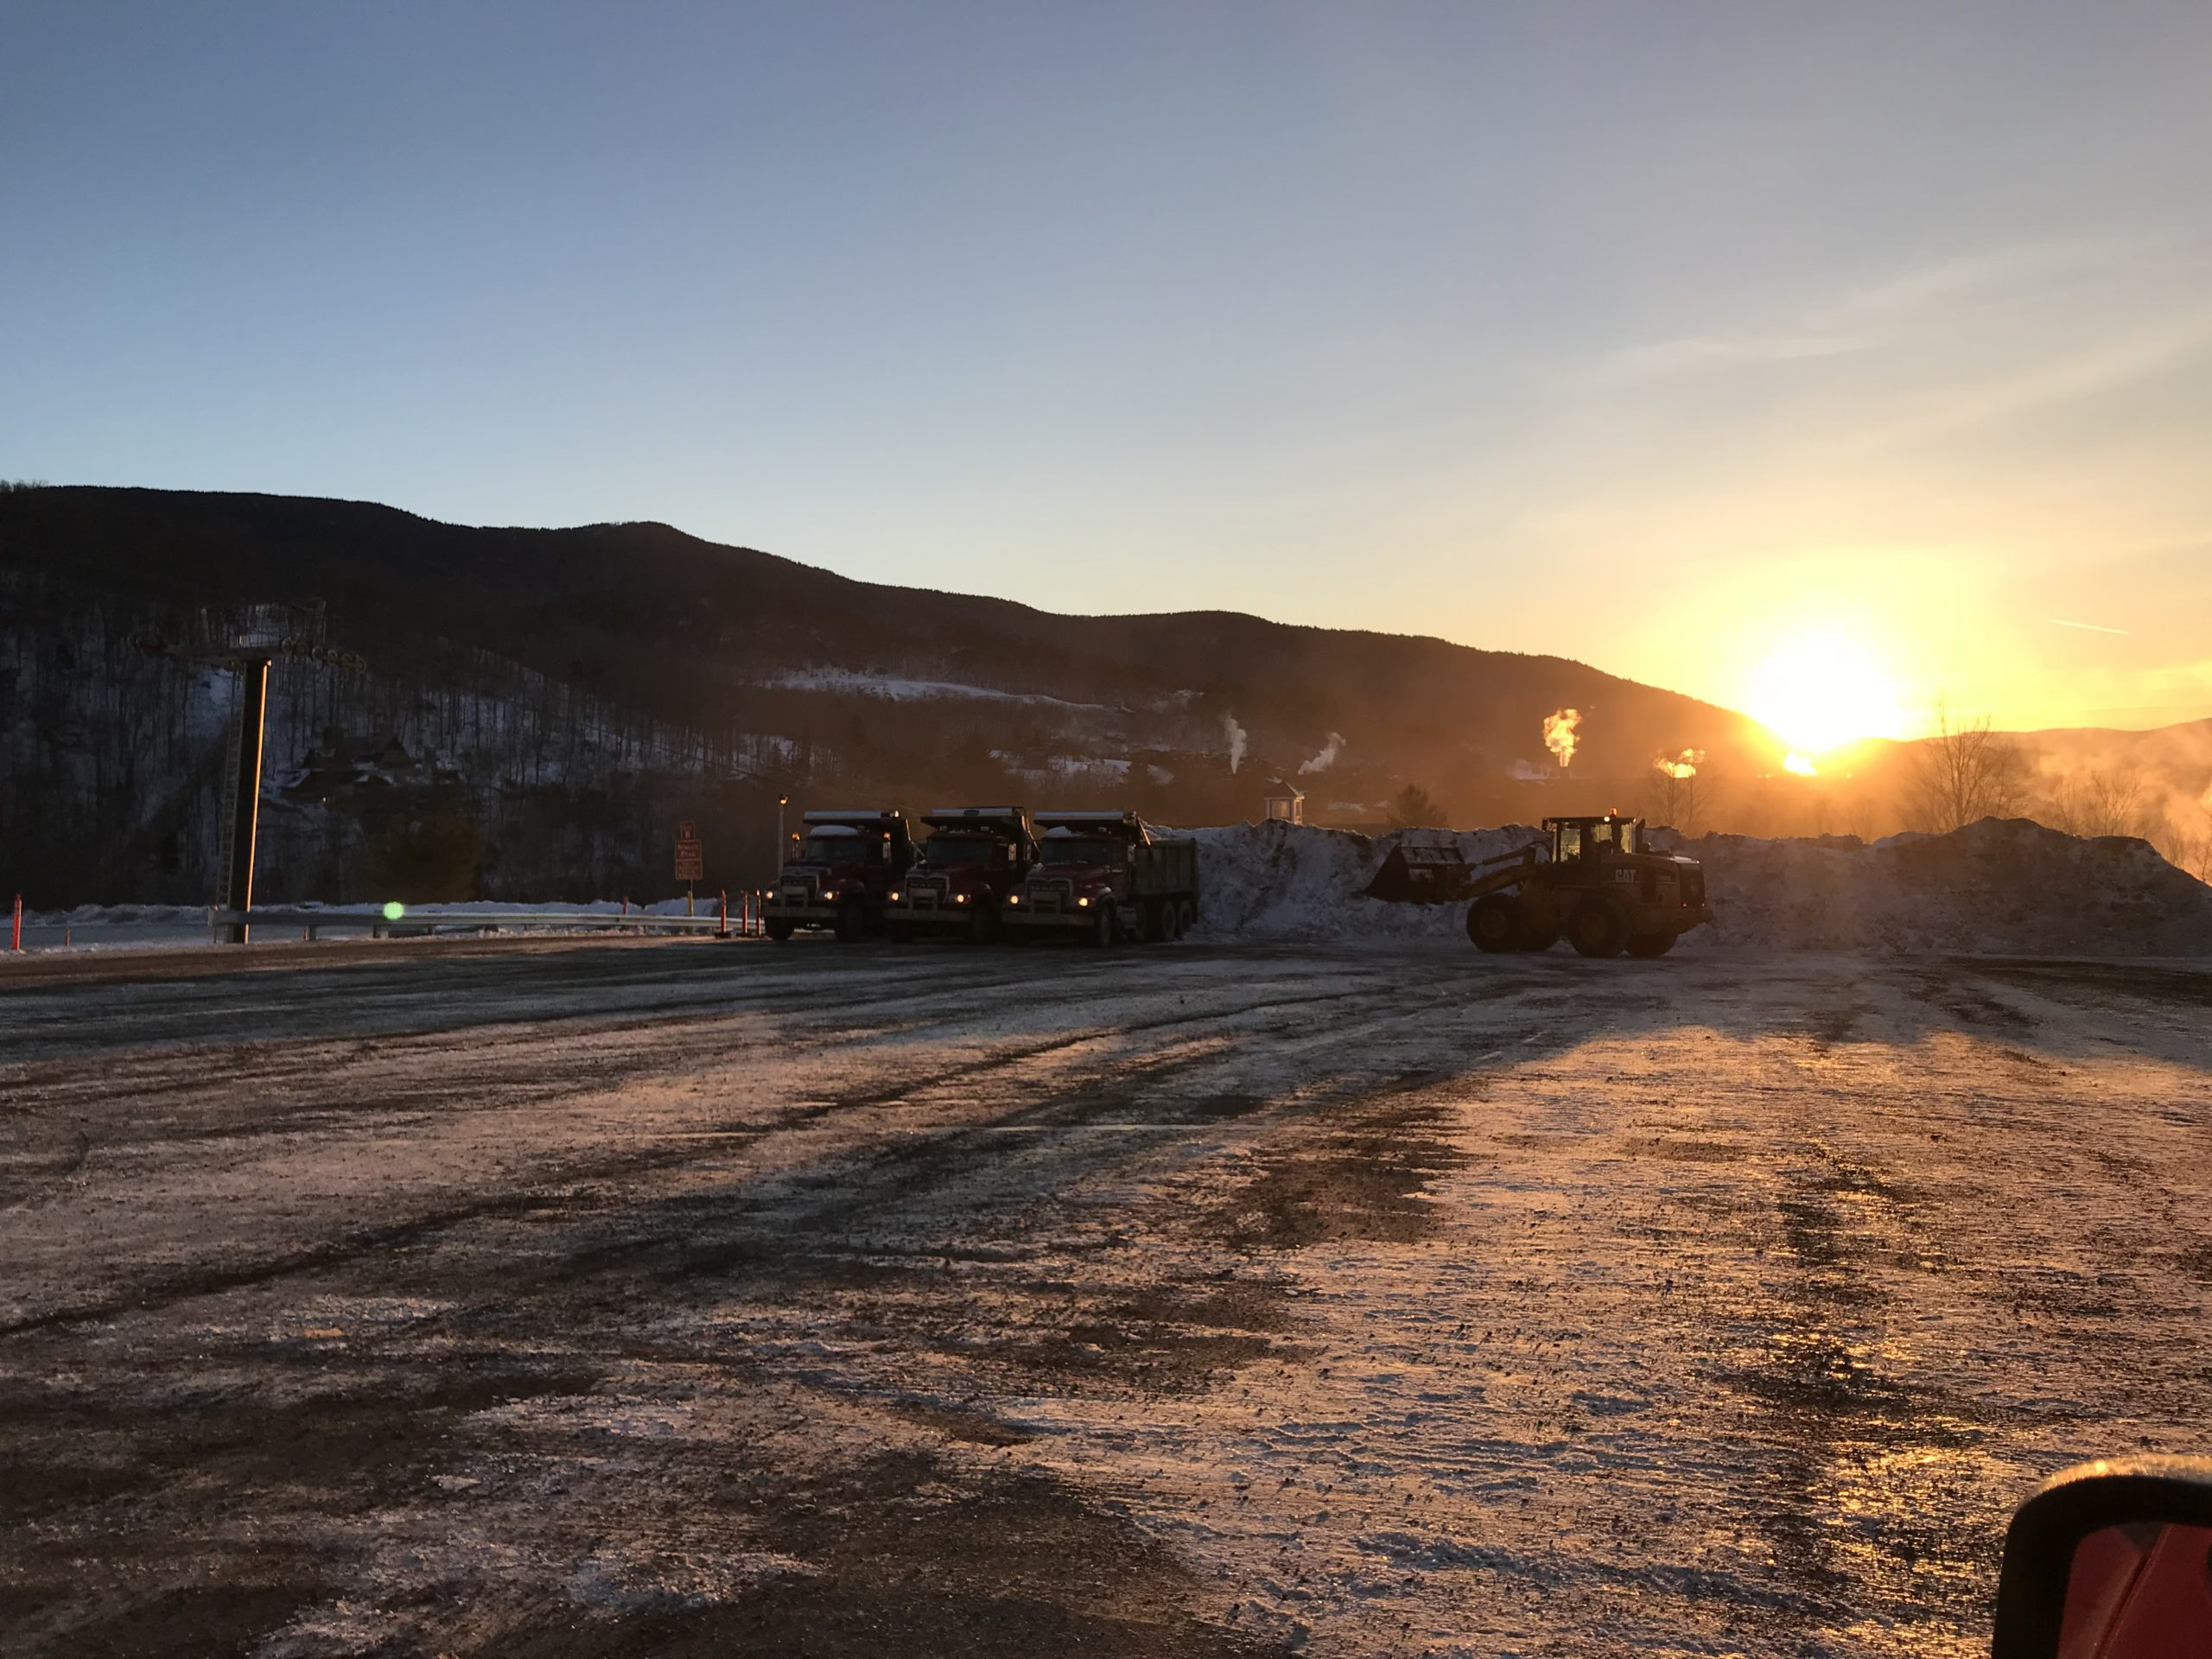 Sunrise Snow Removal at Stowe Mountain Resort